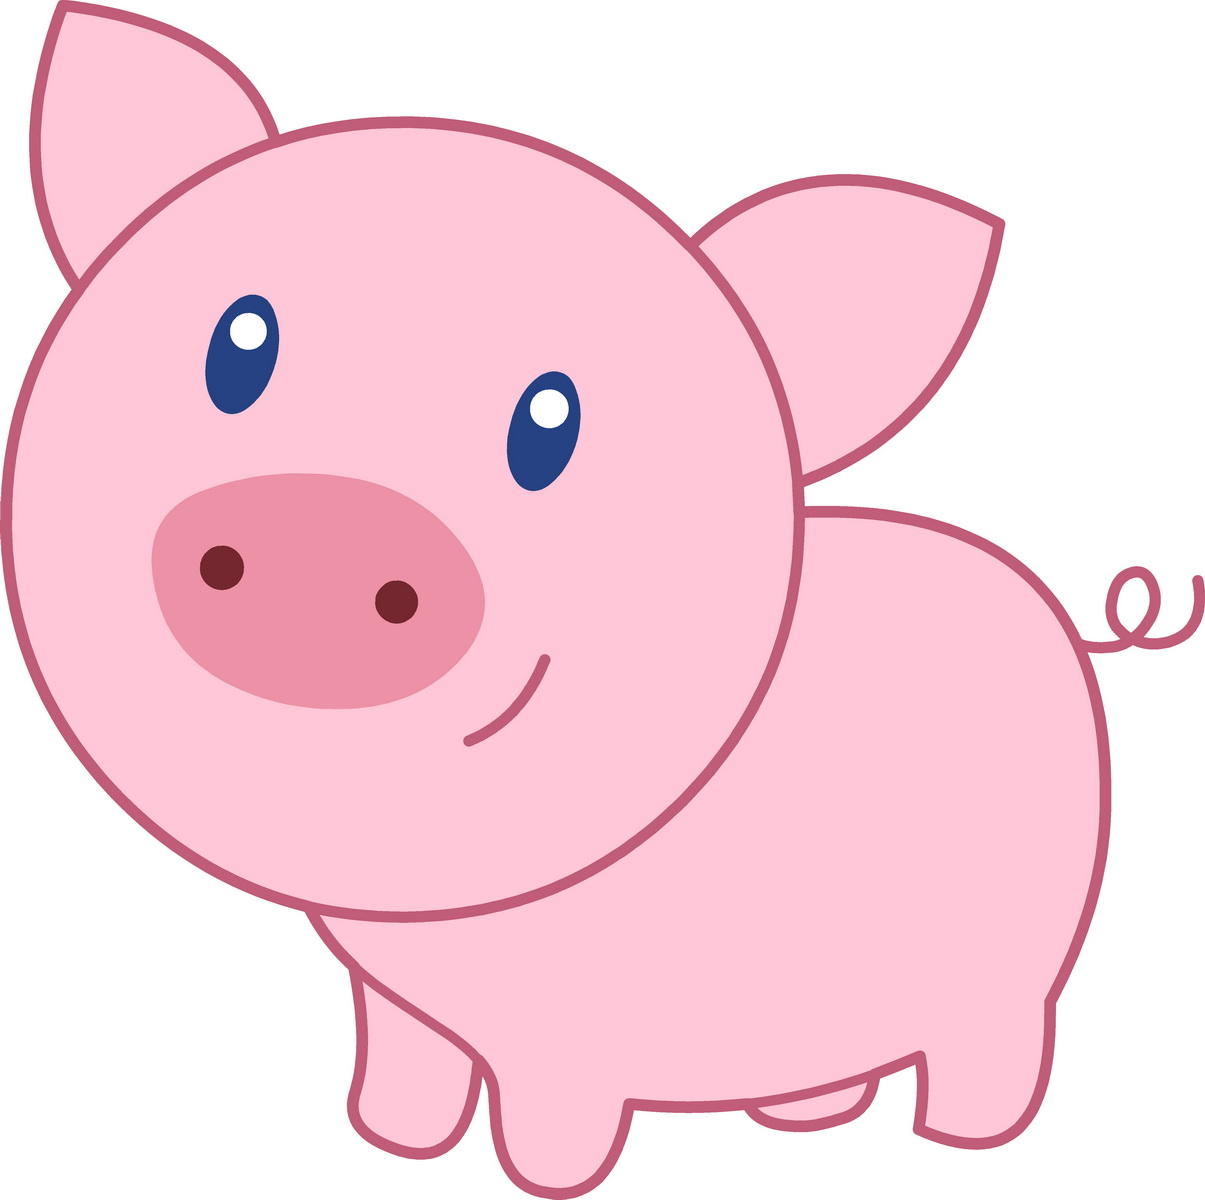 Cute Pig Cartoon 07 Wallpaper.